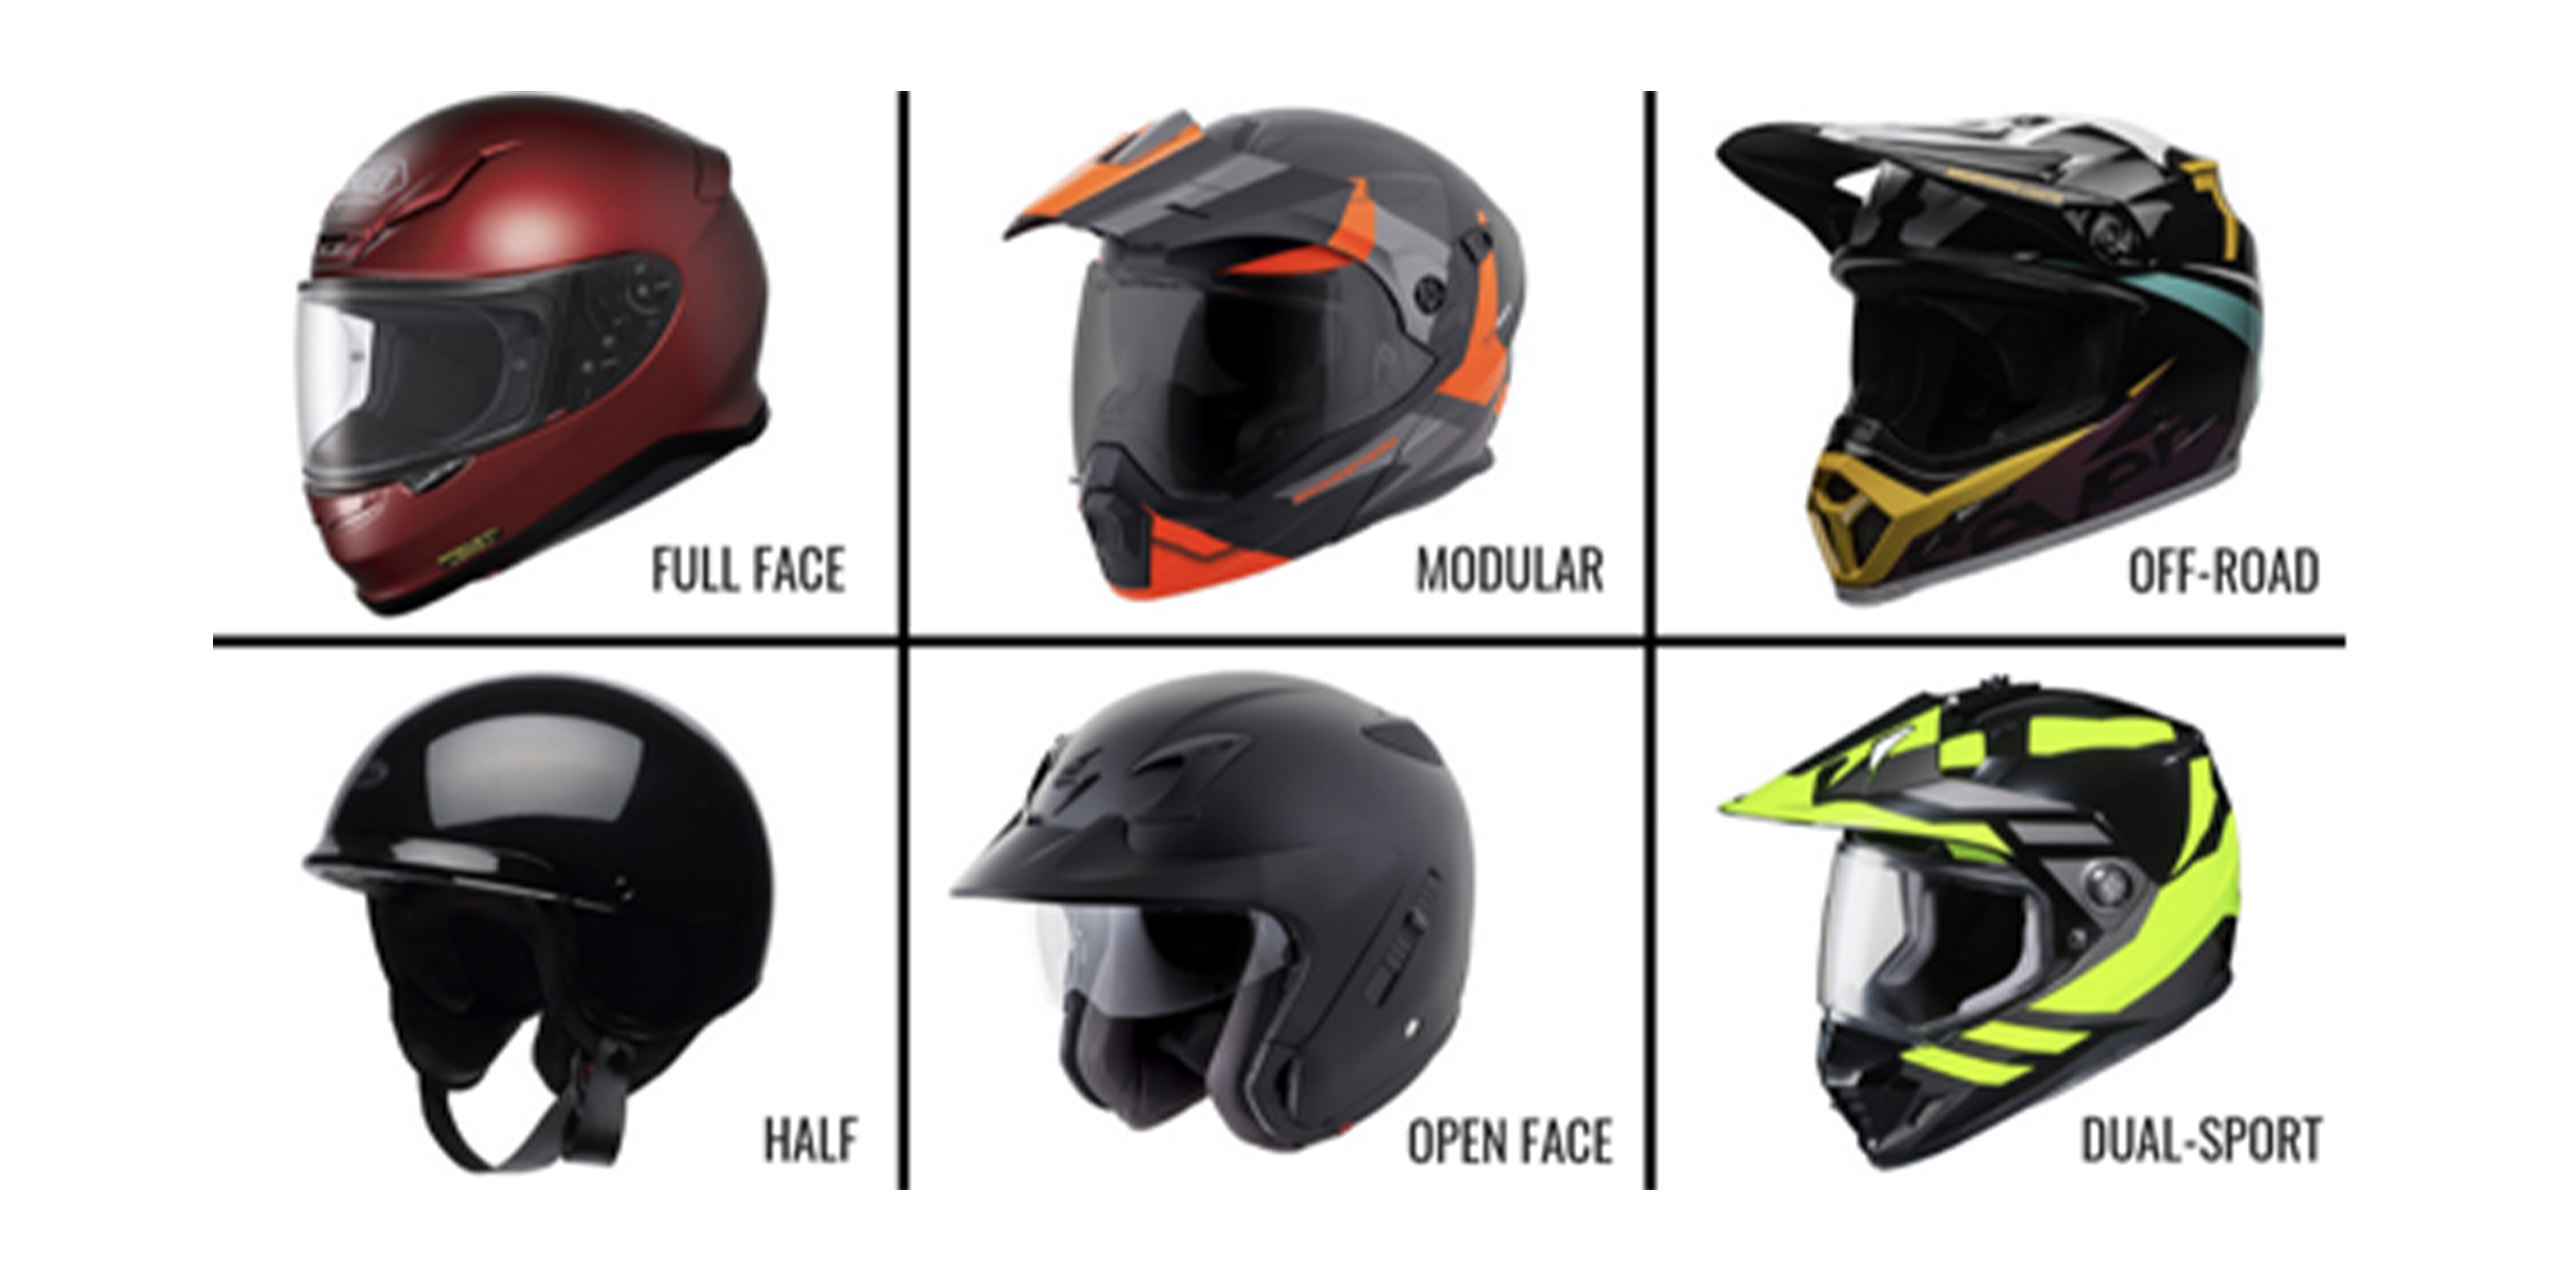 The Ultimate Guide to Types of Motorcycle Helmets